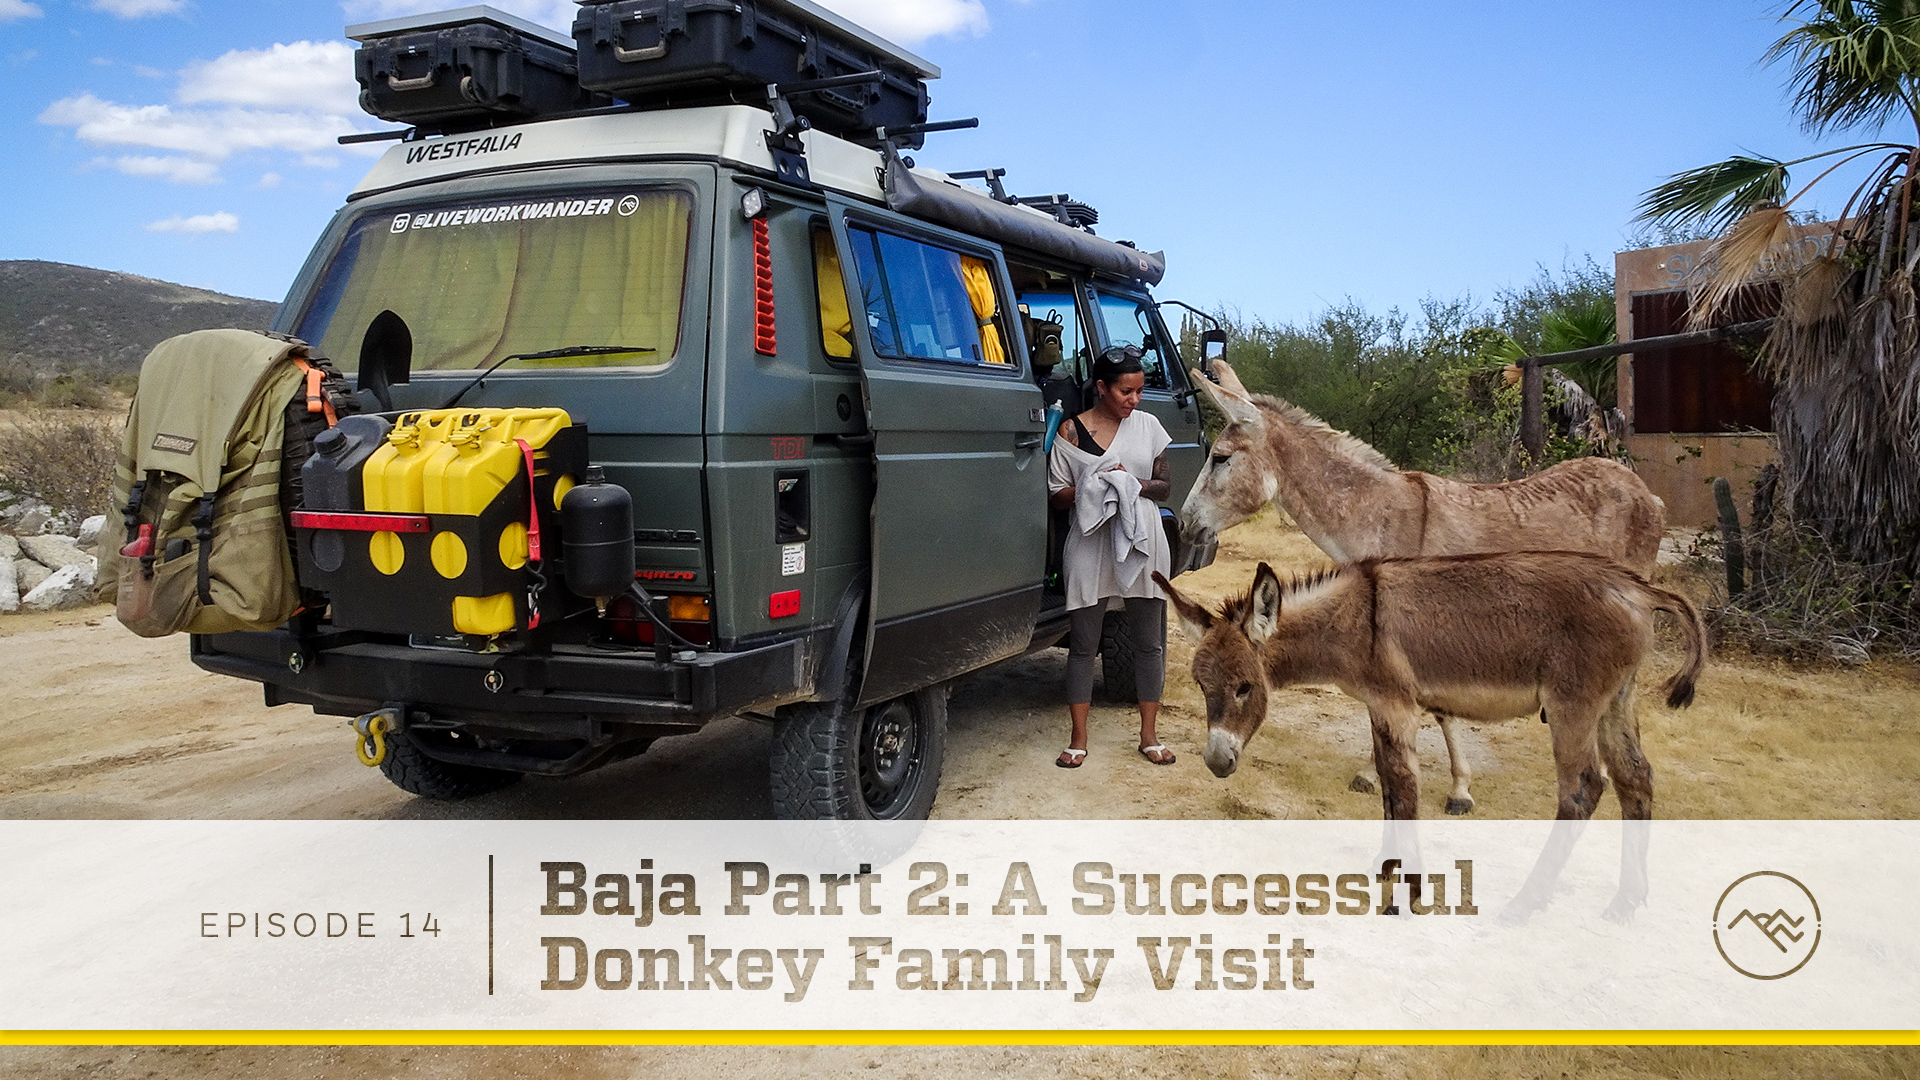 E014 : Baja Part 2 - A Successful Donkey Family Visit